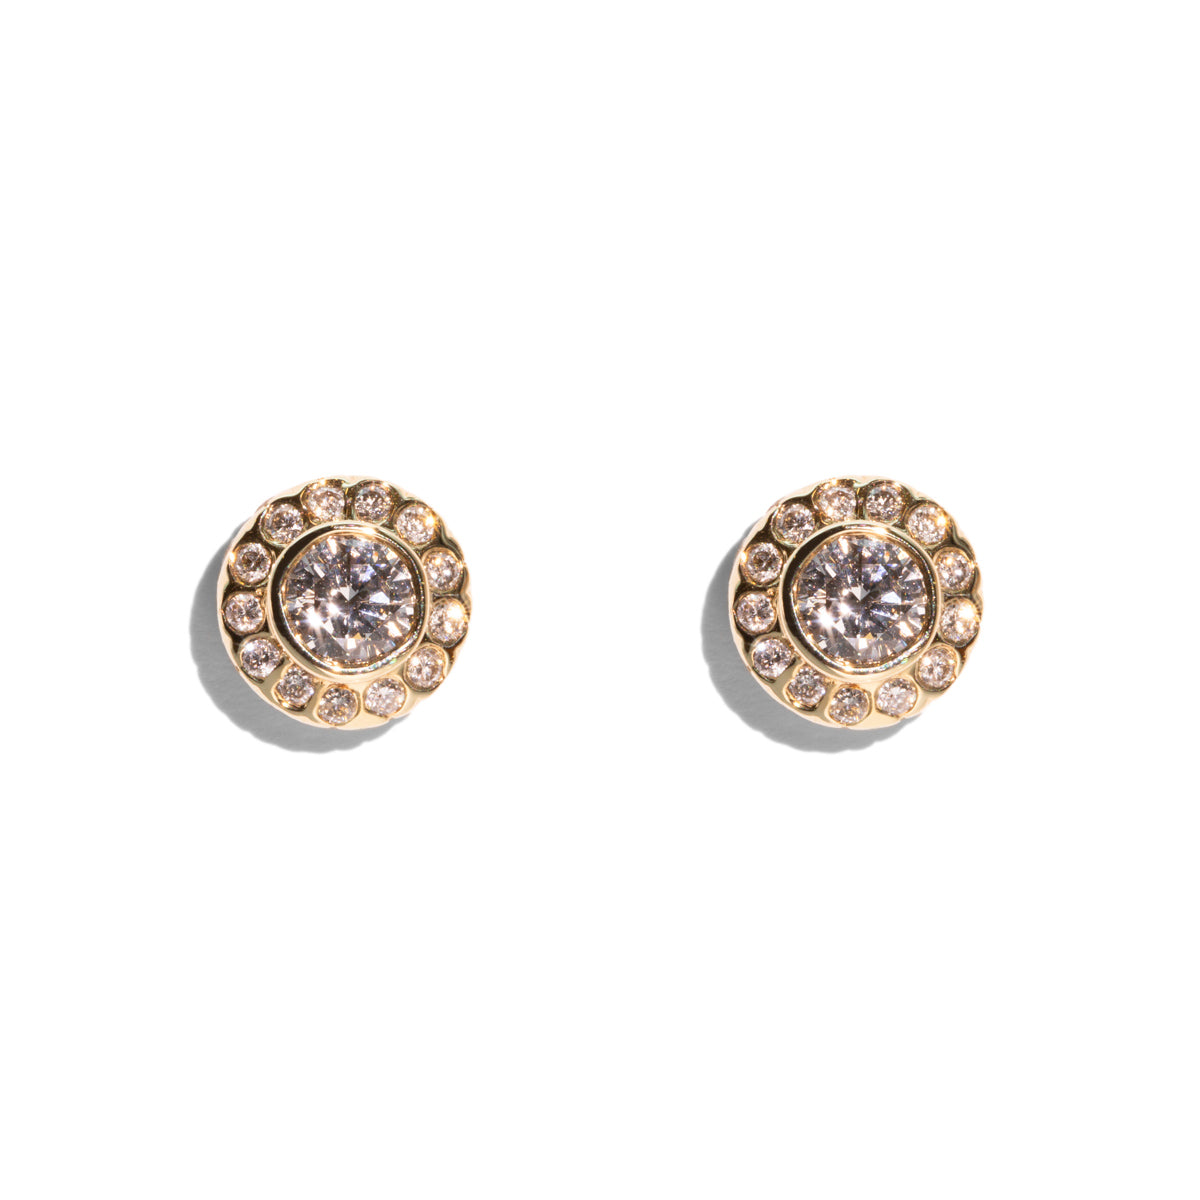 The Arabella Vintage Diamond Earrings